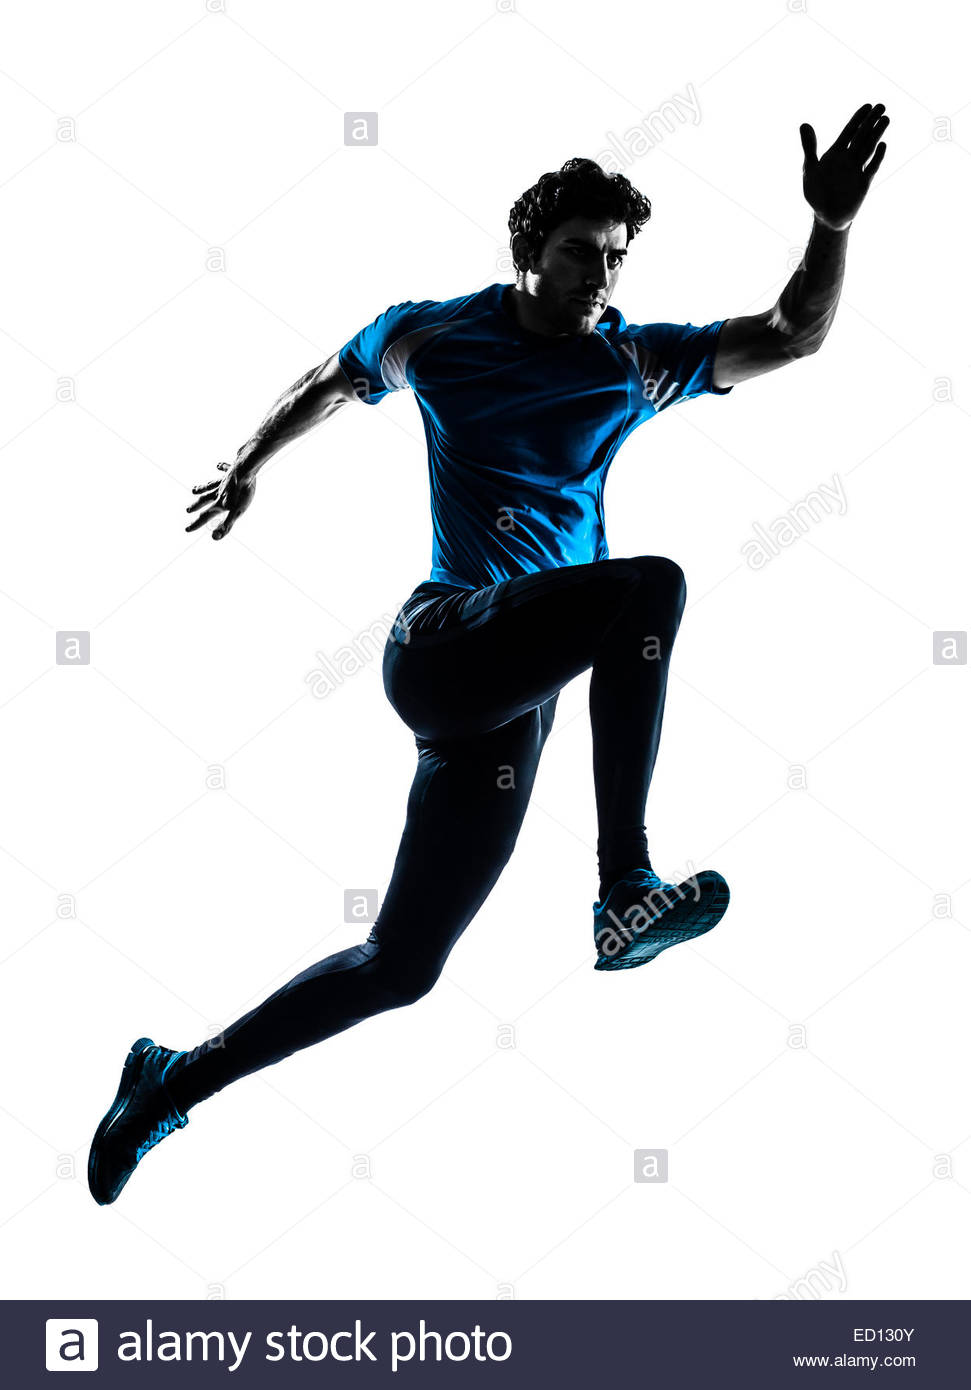 971x1390e Man Running Sprinting Jogging In Silhouette Studio Isolated